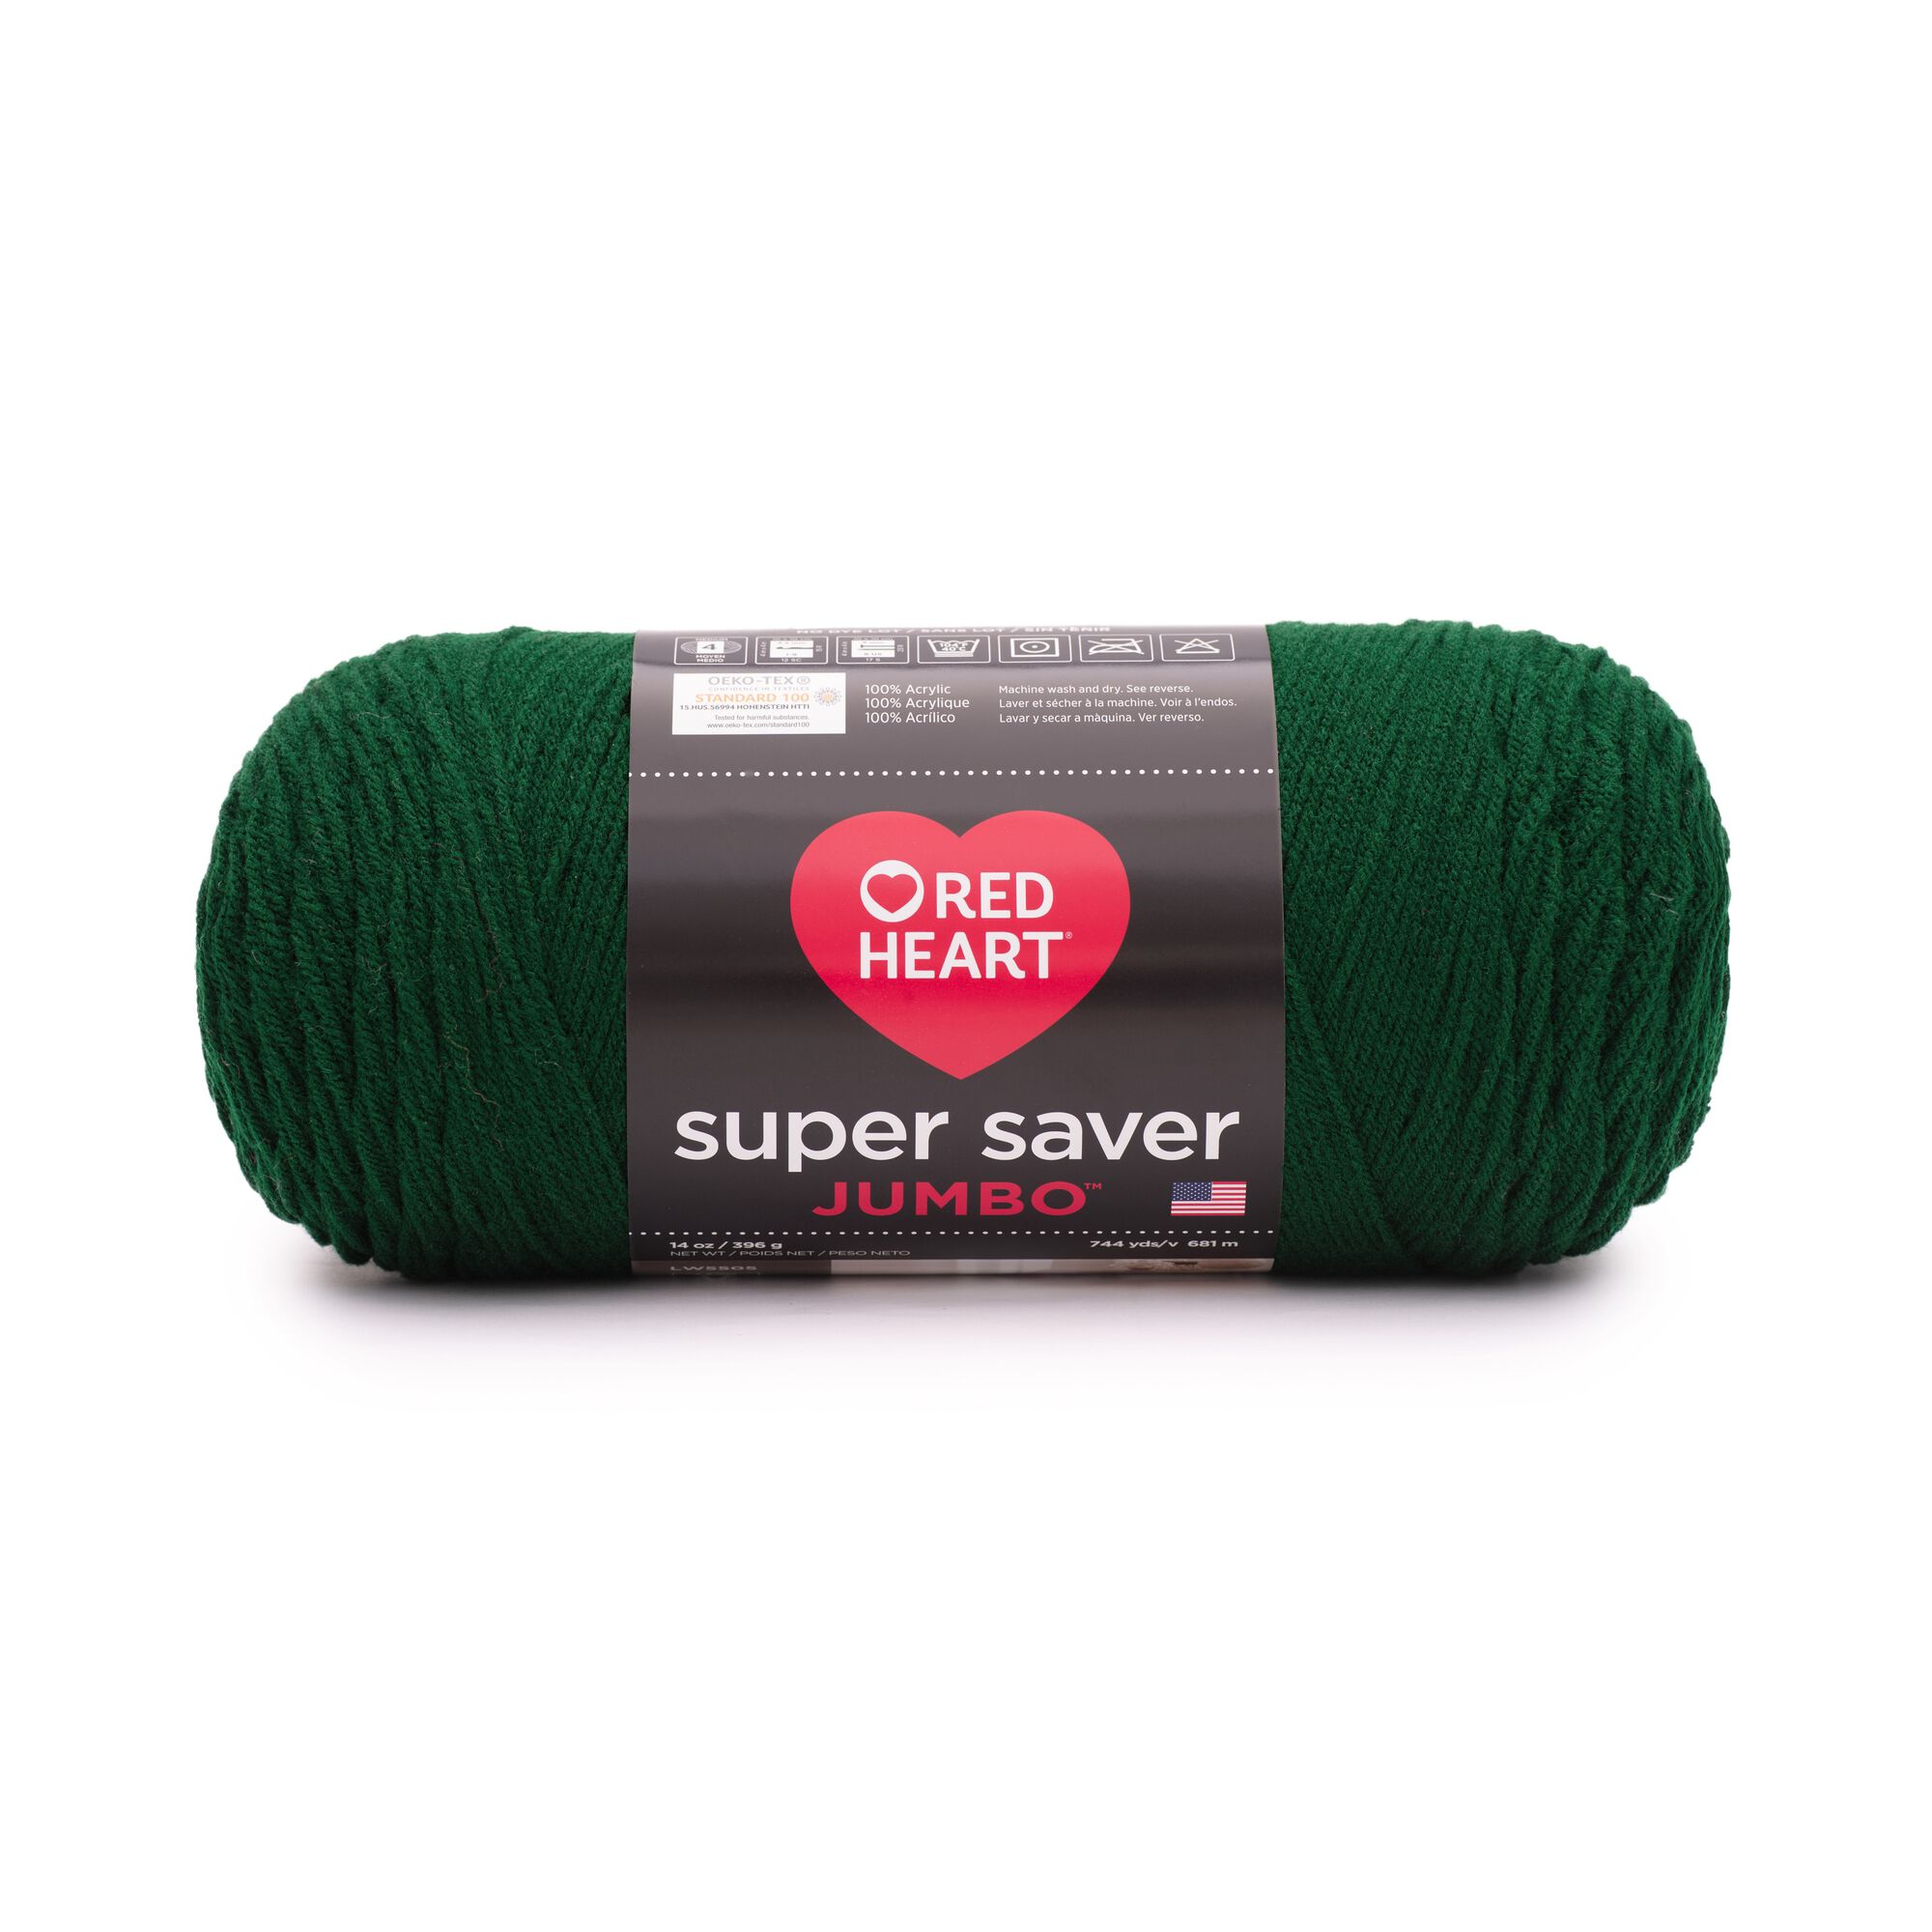 Red Heart Super Saver Jumbo Yarn, Hunter Green